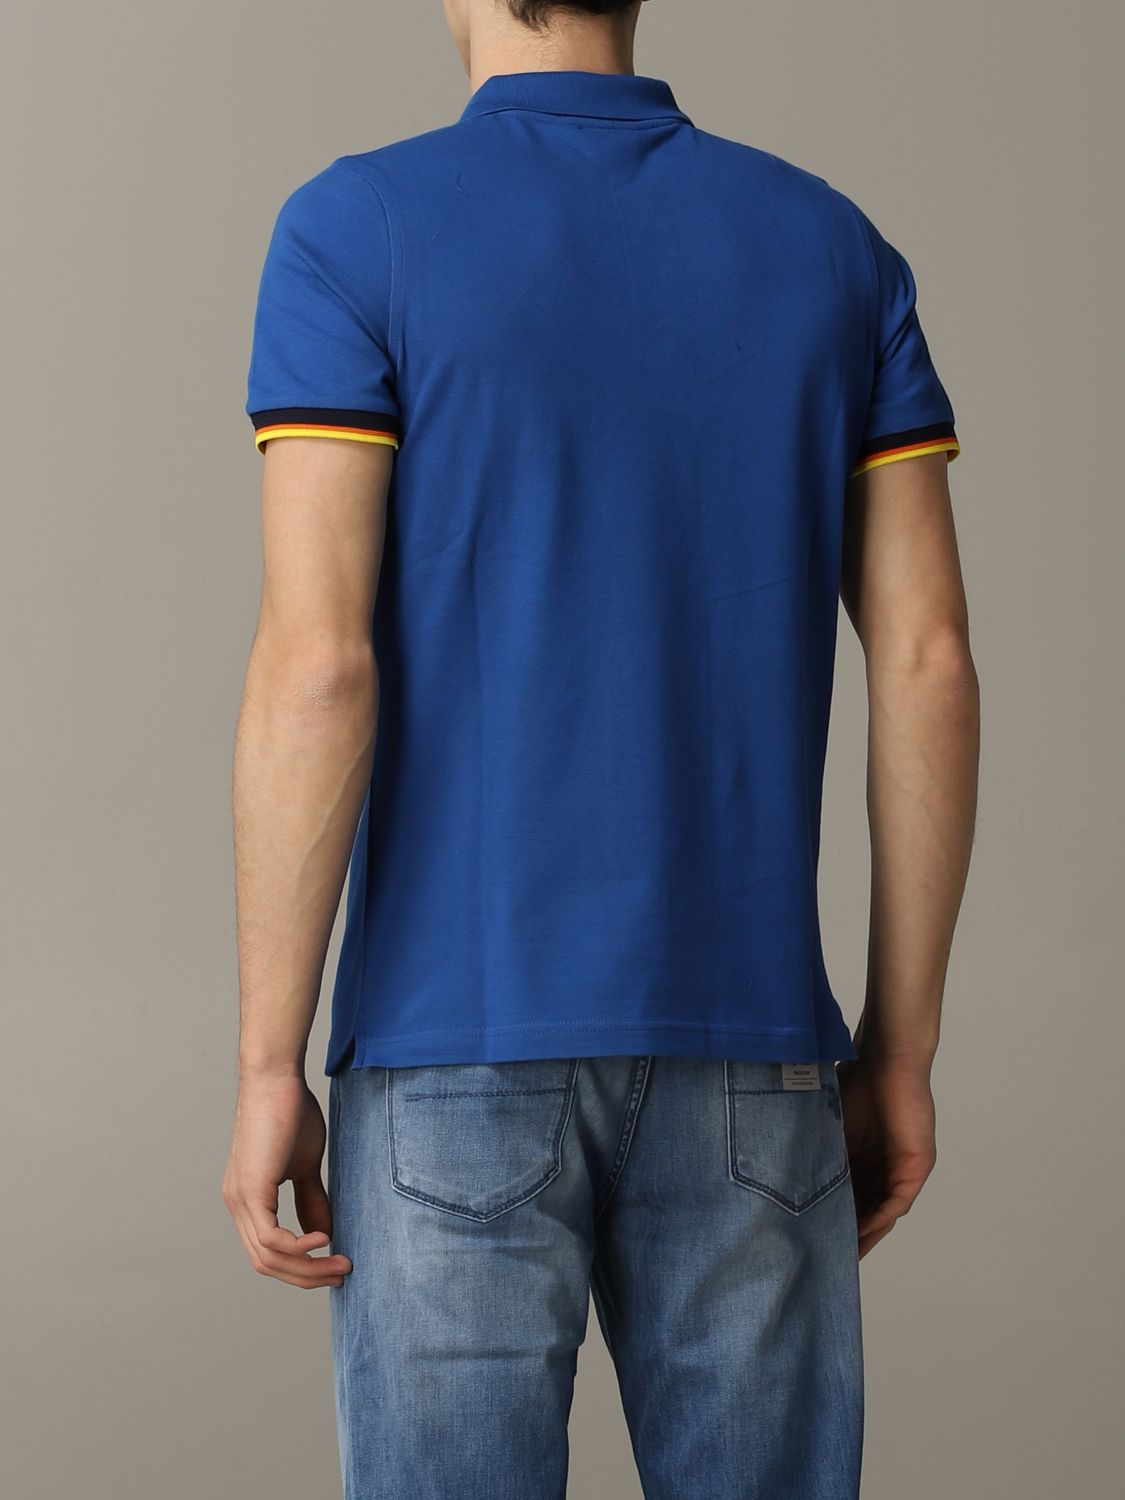 Polo herren K-way royal blue 3